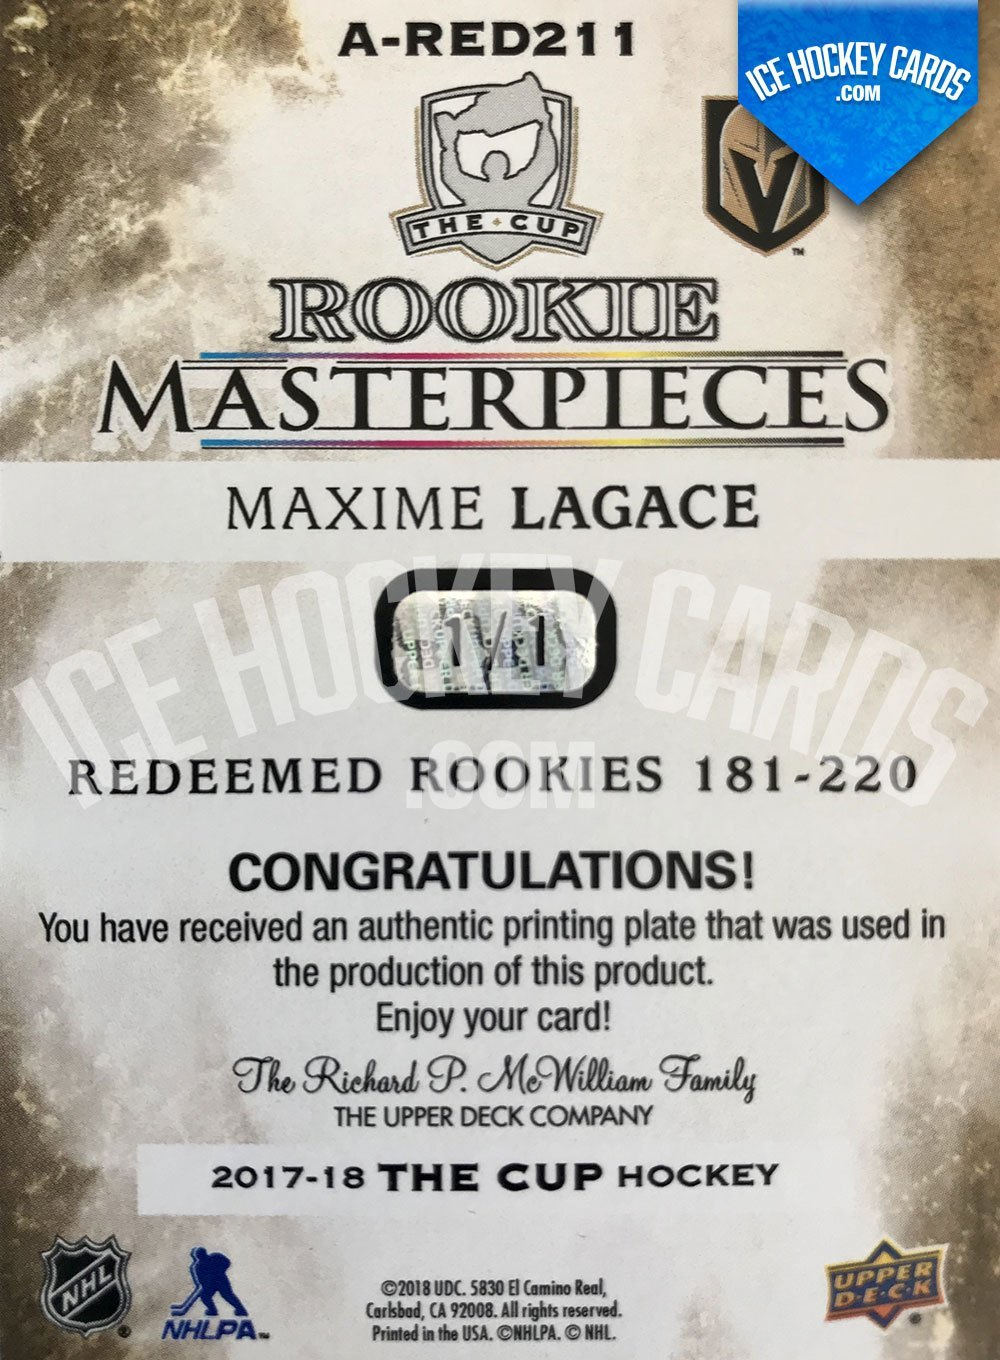 Upper Deck - The Cup 2017-18 - Maxime Lagace Rookie Masterpieces Printing Plate RC - 1 of 1 back UNIQUE